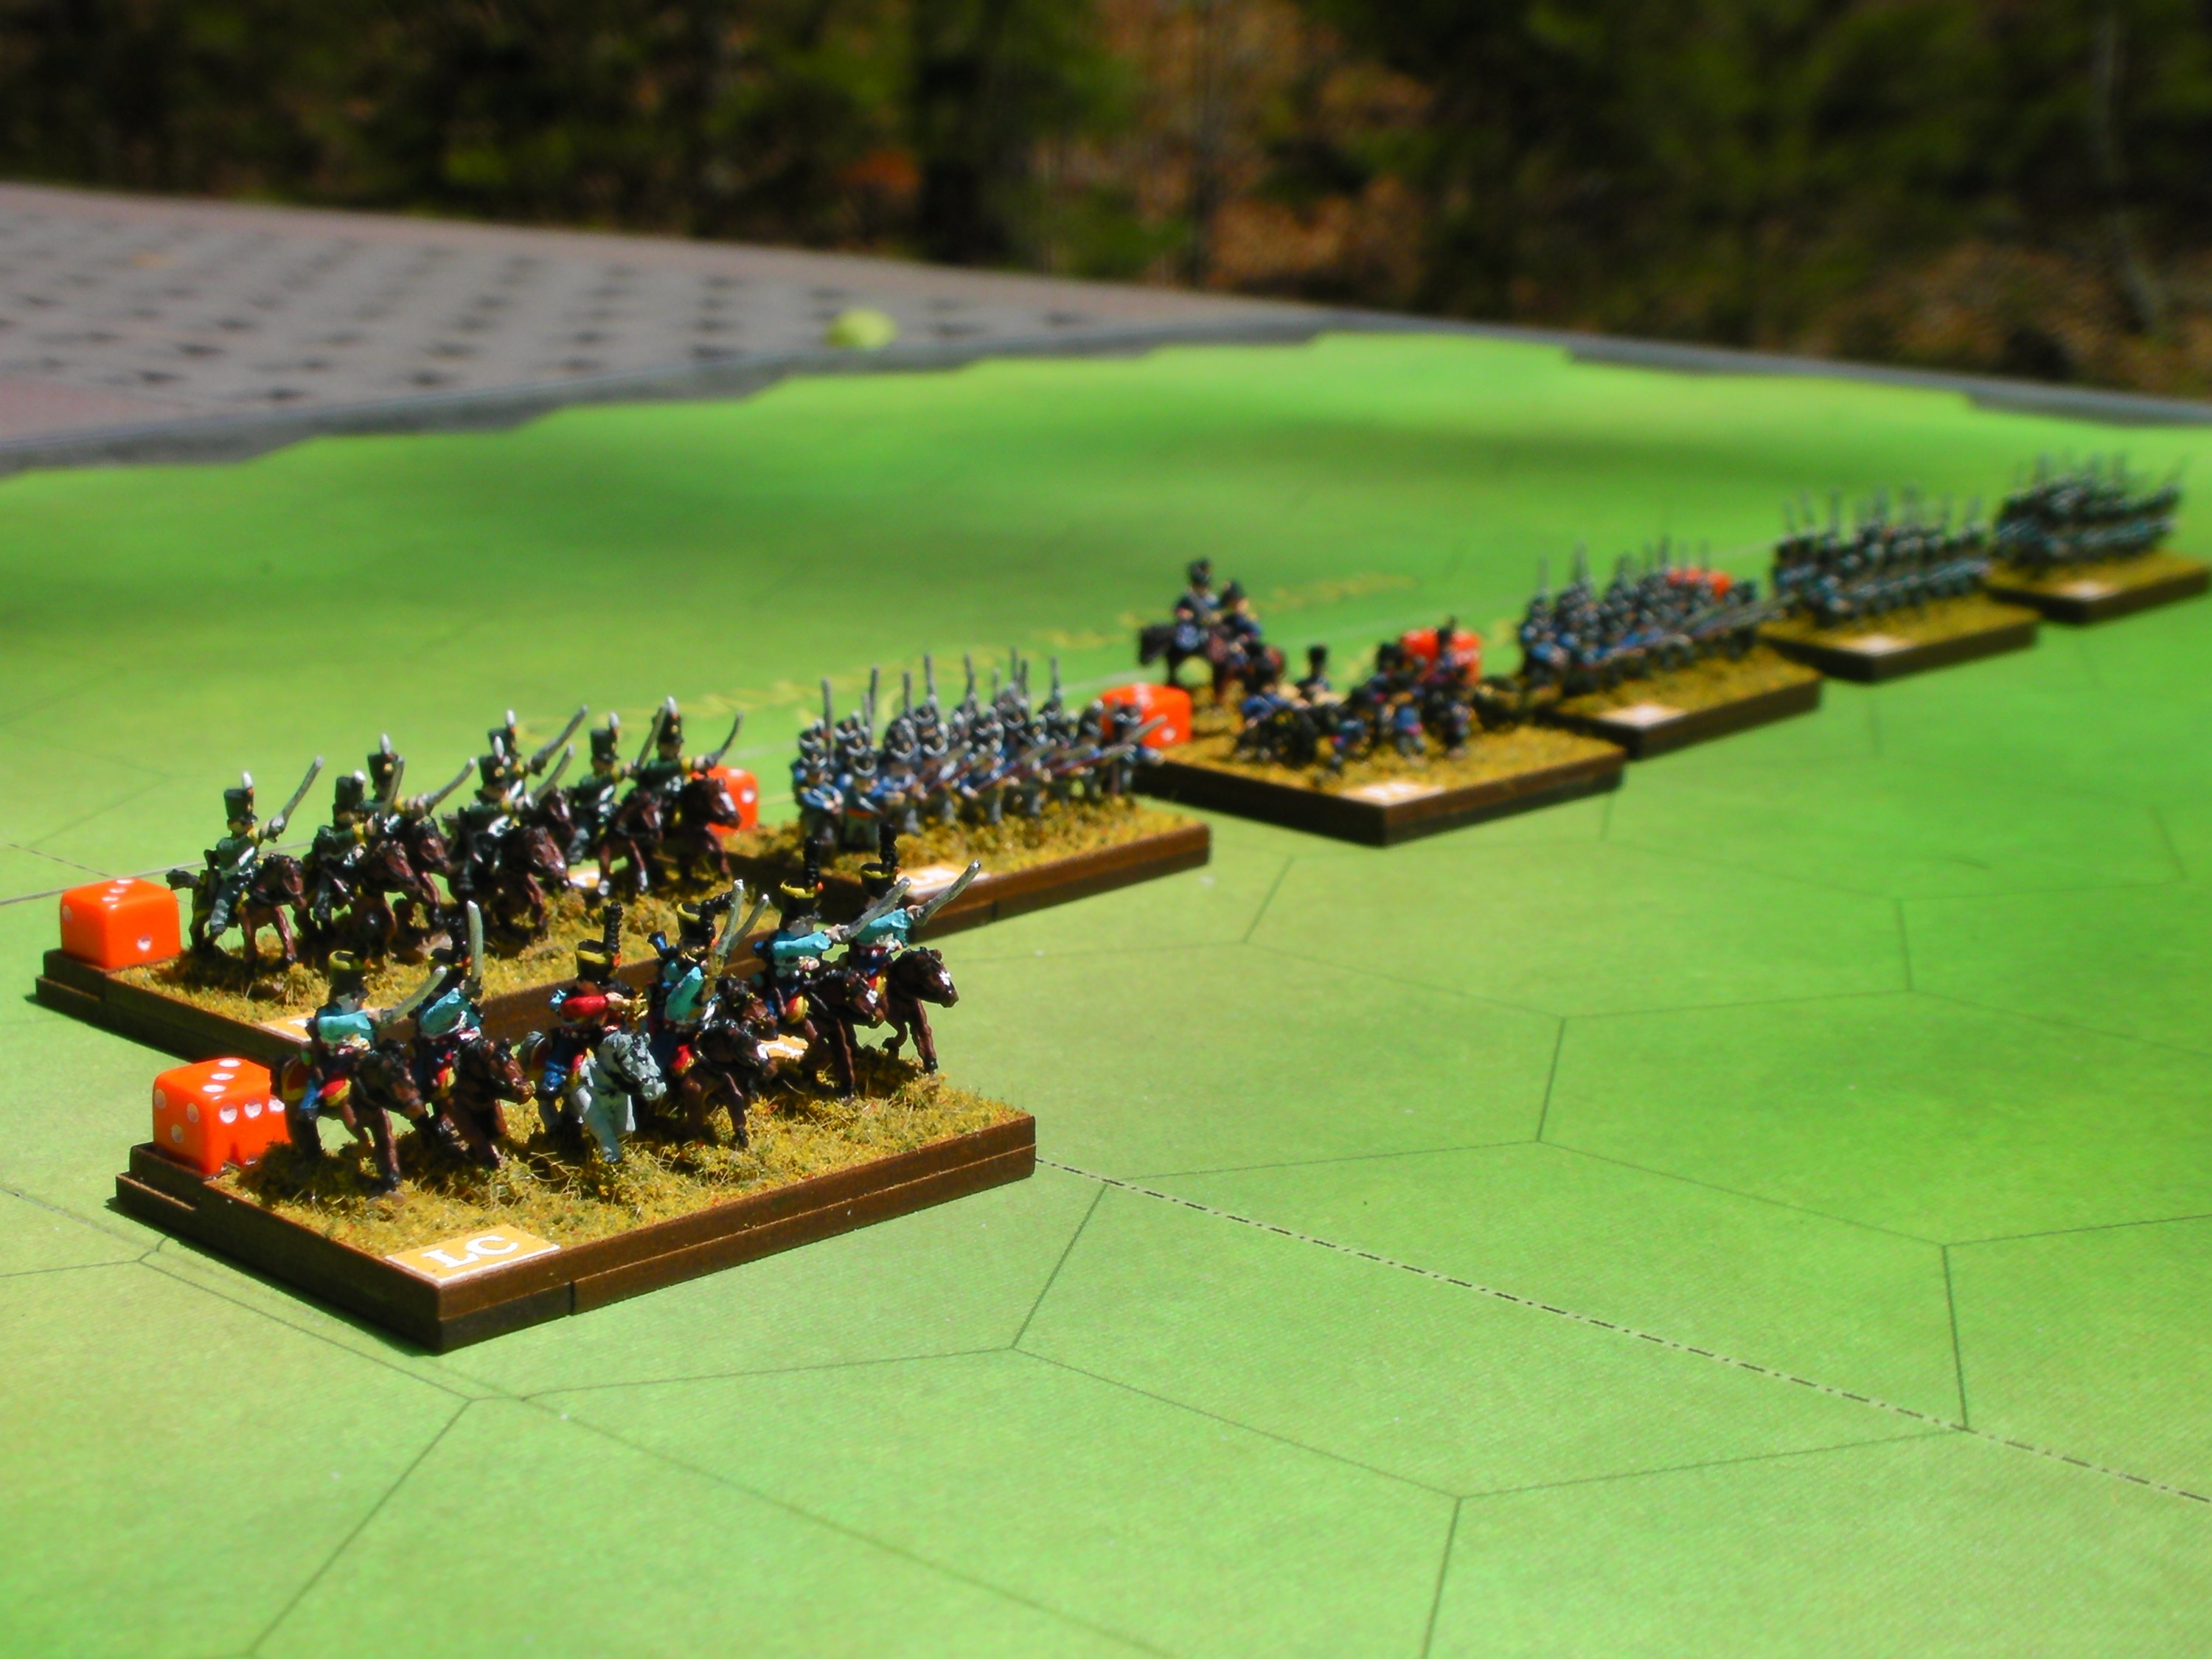 FR's CCN Miniatures Project (Large Images) - Commands